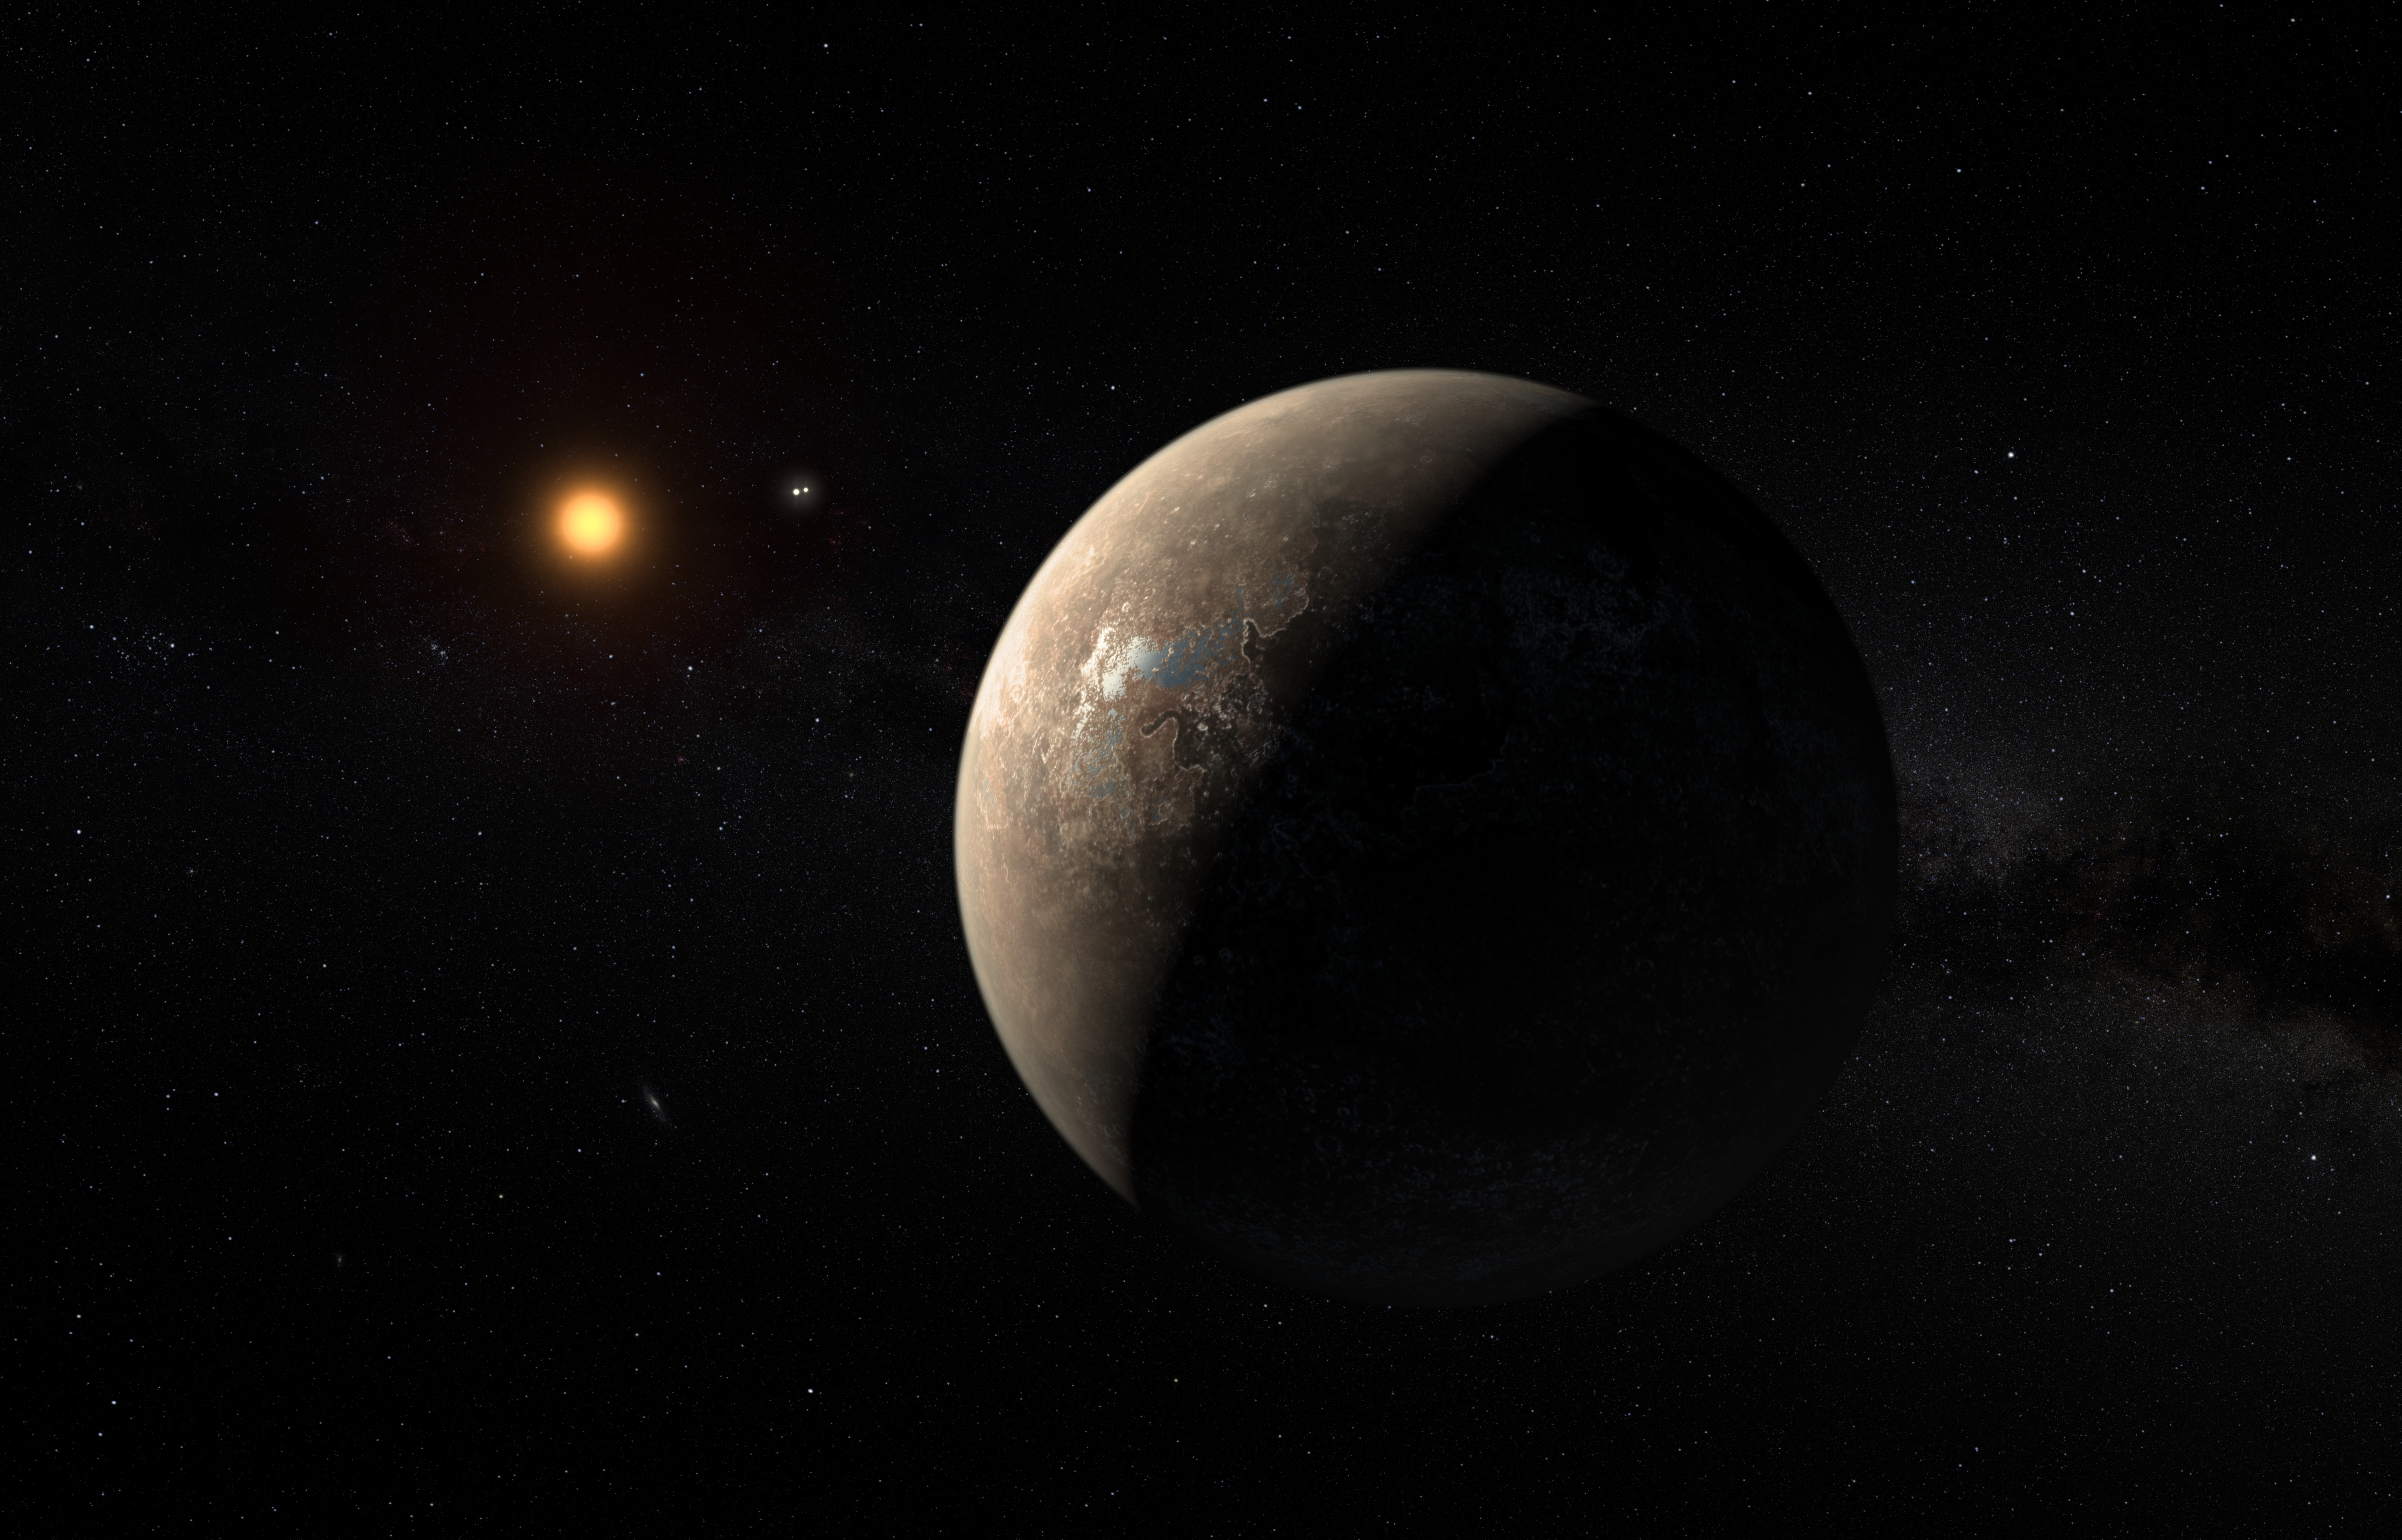 Proxima b: Closest Earth-Like Planet Discovery in Pictures